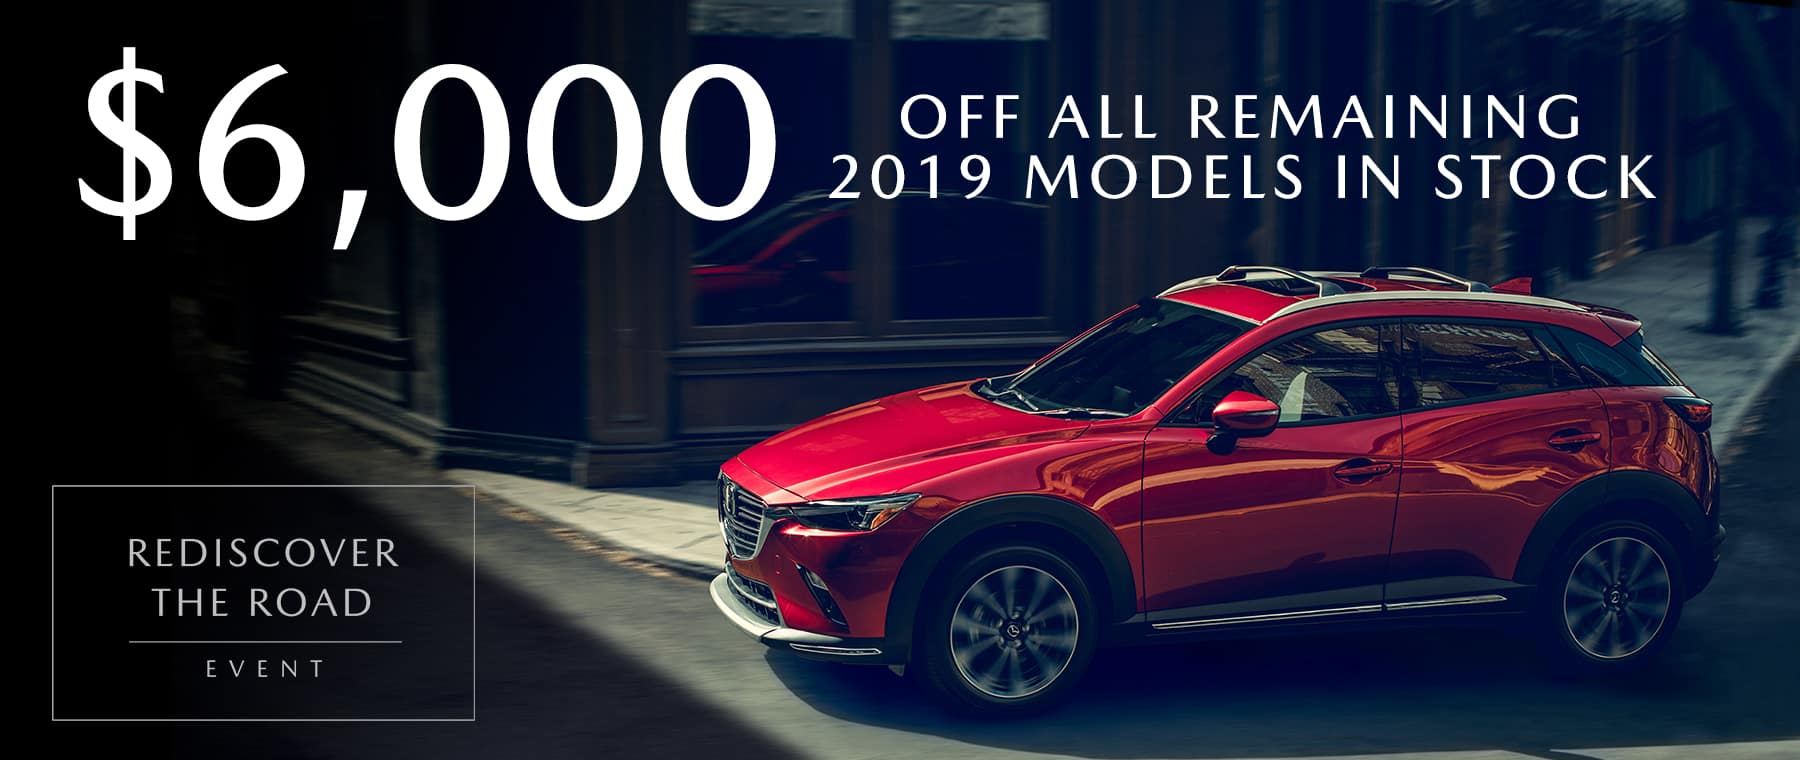 $6k Off remaining 2019 models in stock